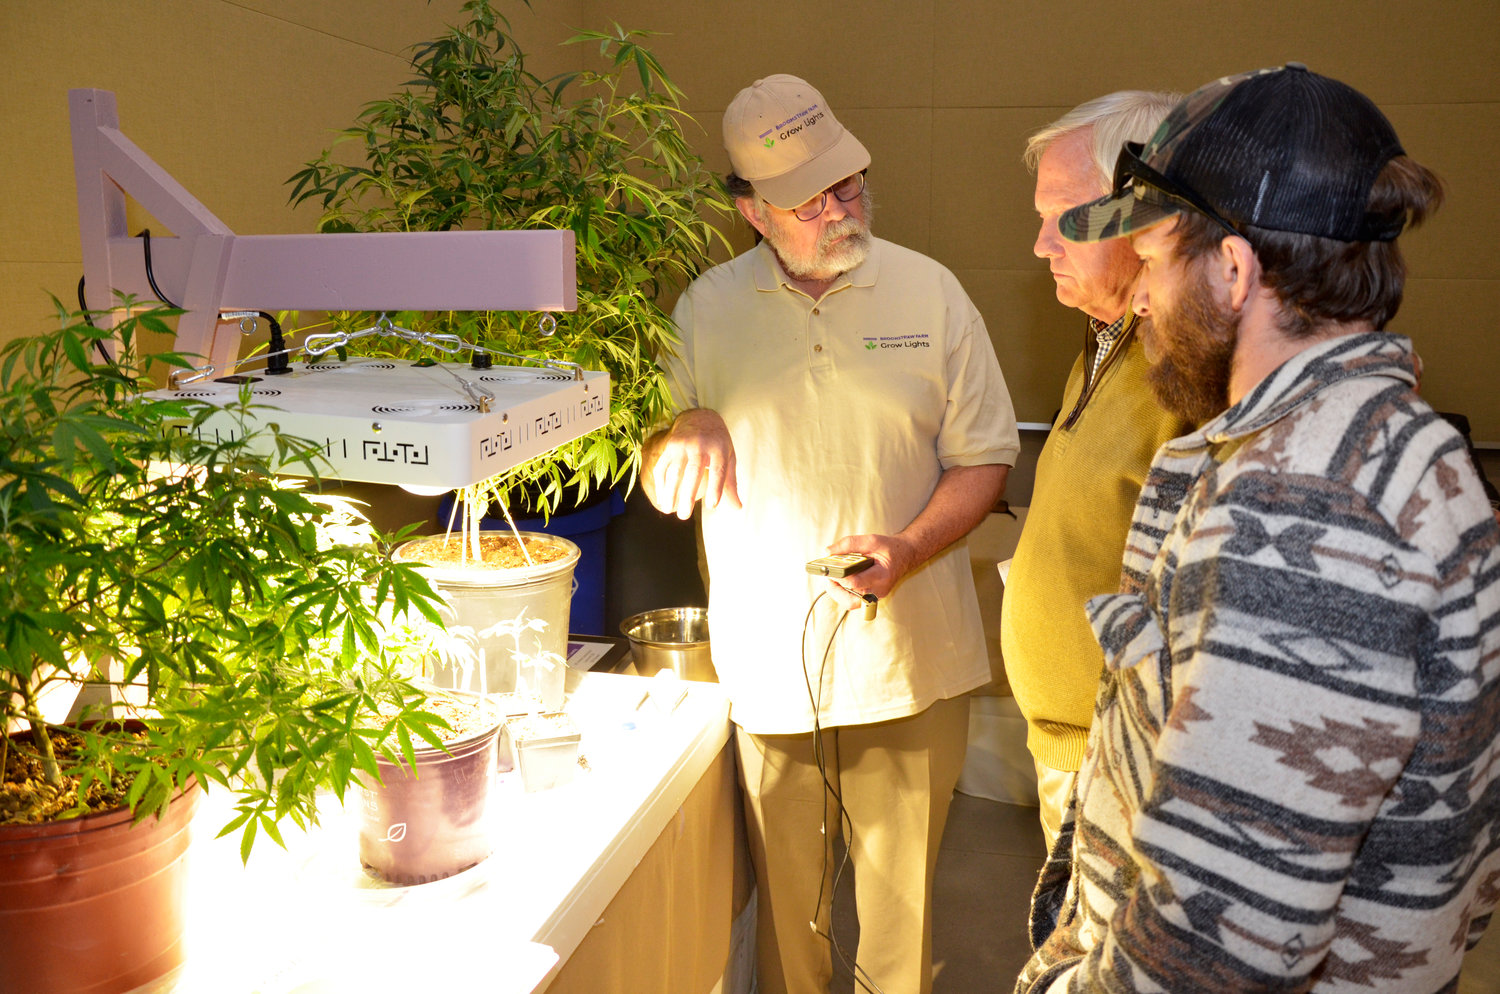 In the exhibition hall at the Agricultural Center in Pittsboro, … of Brookwood Farms talks with … and …. about the lumen sensor device and the growth lights hanging above the cannabis plants.  The device shows the user the amount of light needed by the plants in order to maximize their growth.